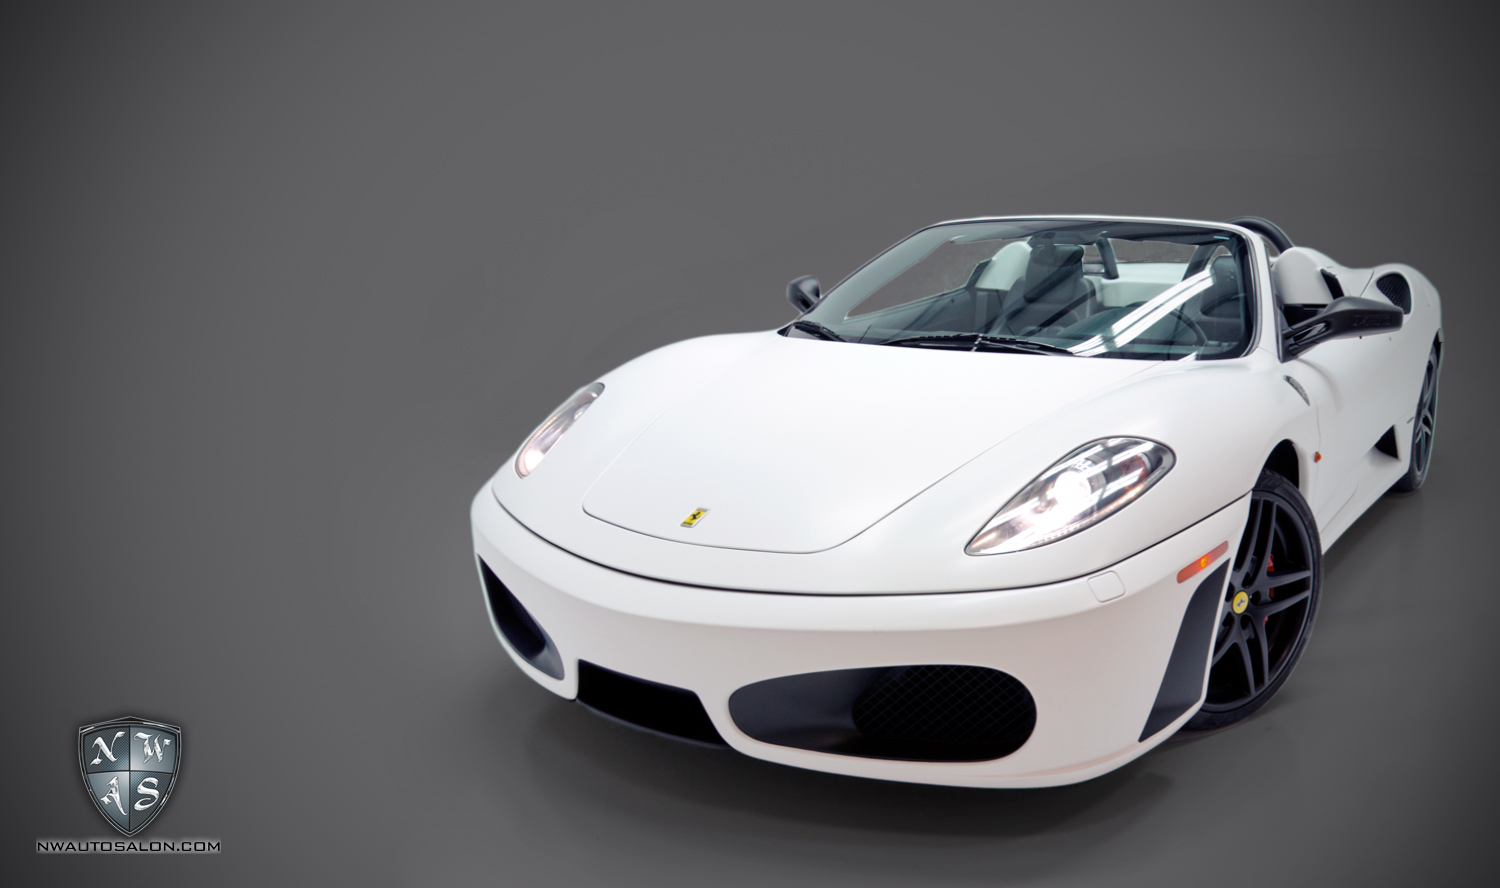 Alderwood Auto Detailing NorthWest Auto Salon Ferrari F430 Matte White Vehicle Wrap Black accents